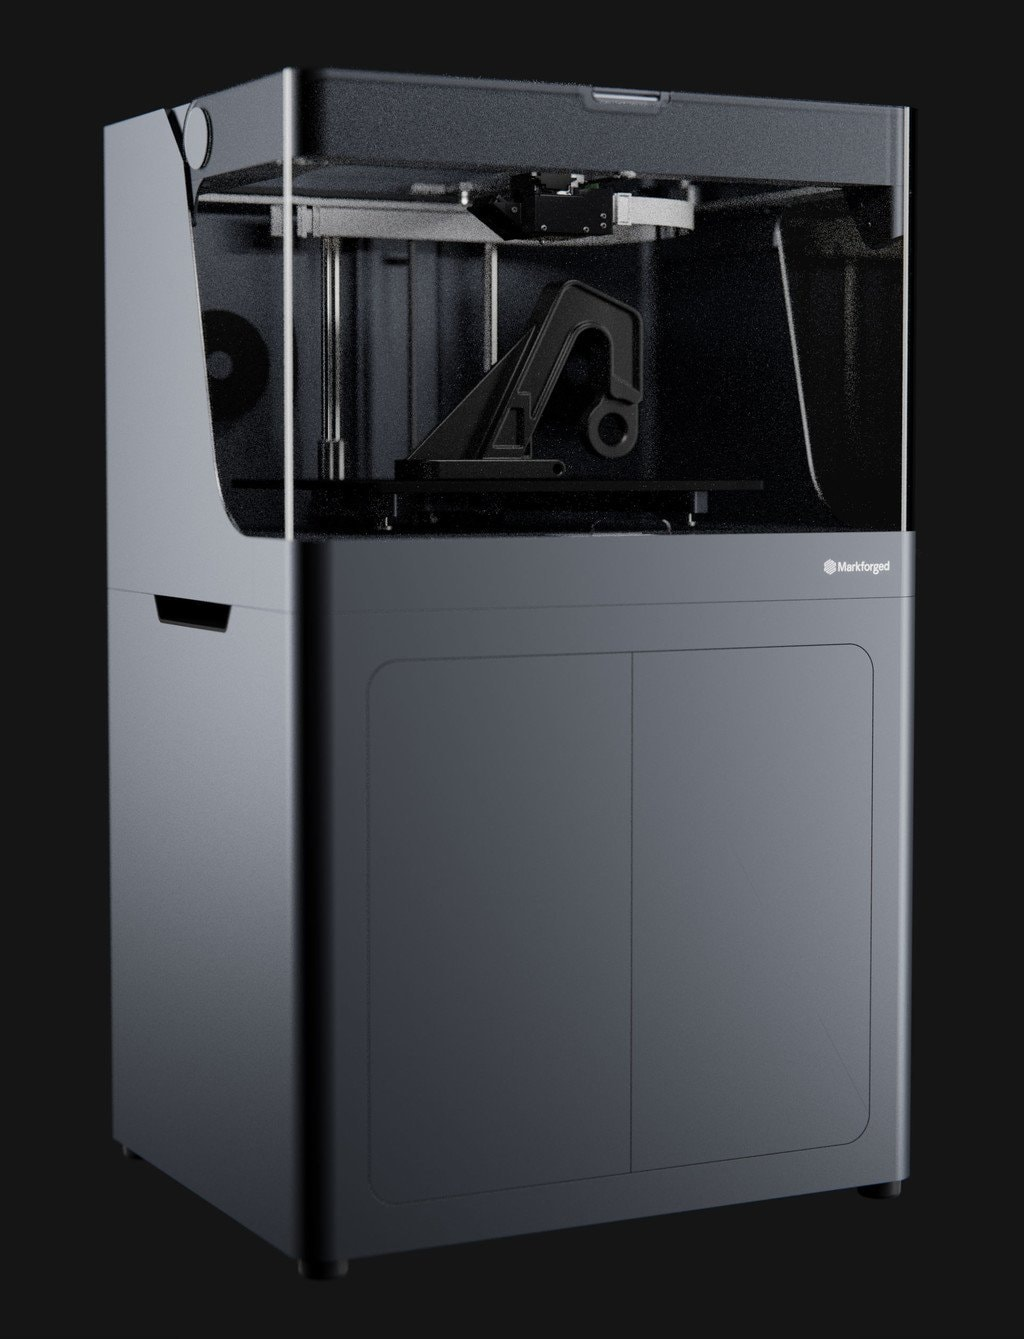 Markforged X7 Industrial Printer